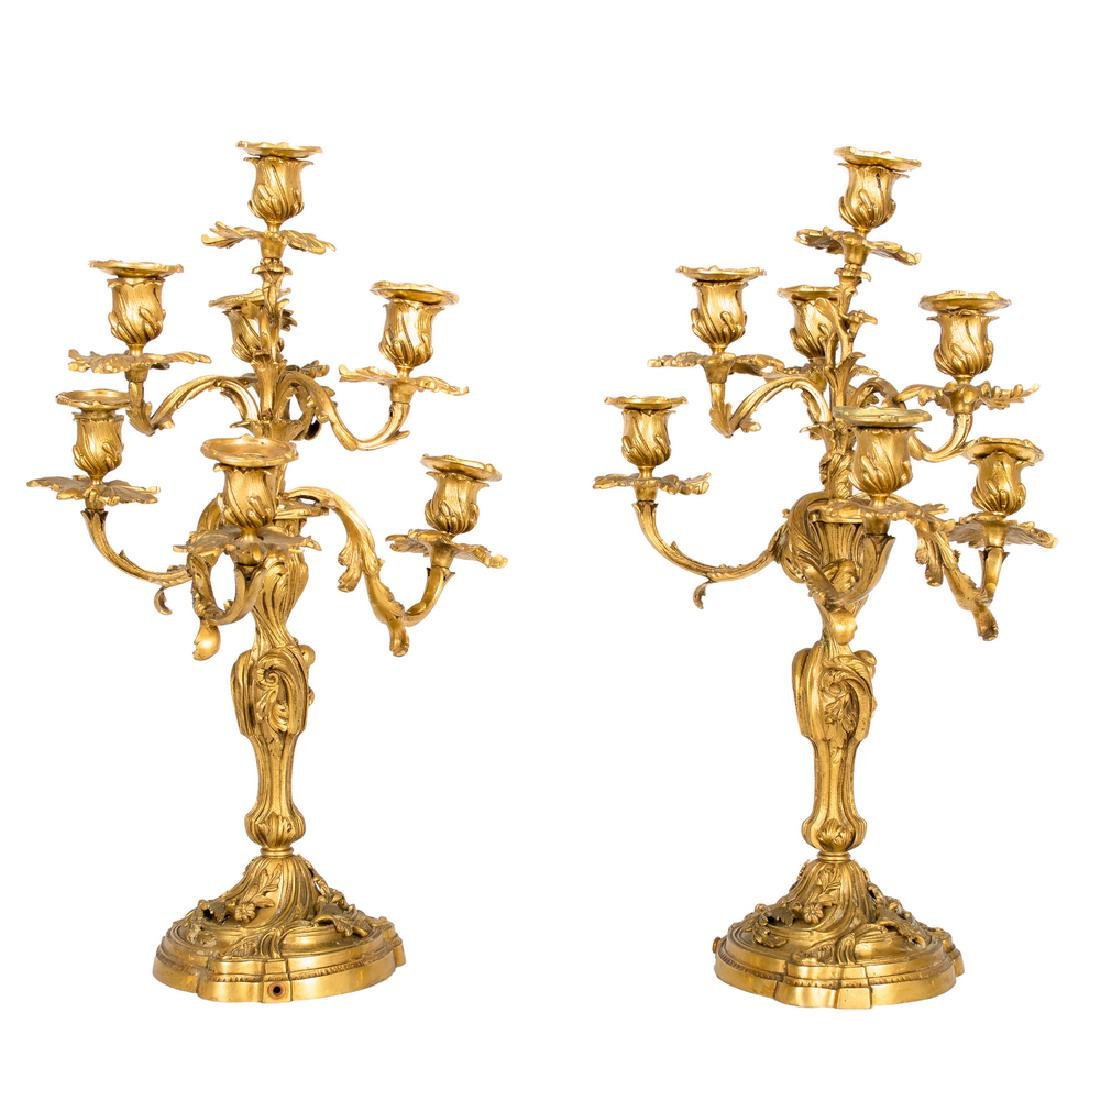 PAIR OF FRENCH LOUIS XV STYLE GILT BRONZE CANDELABRA